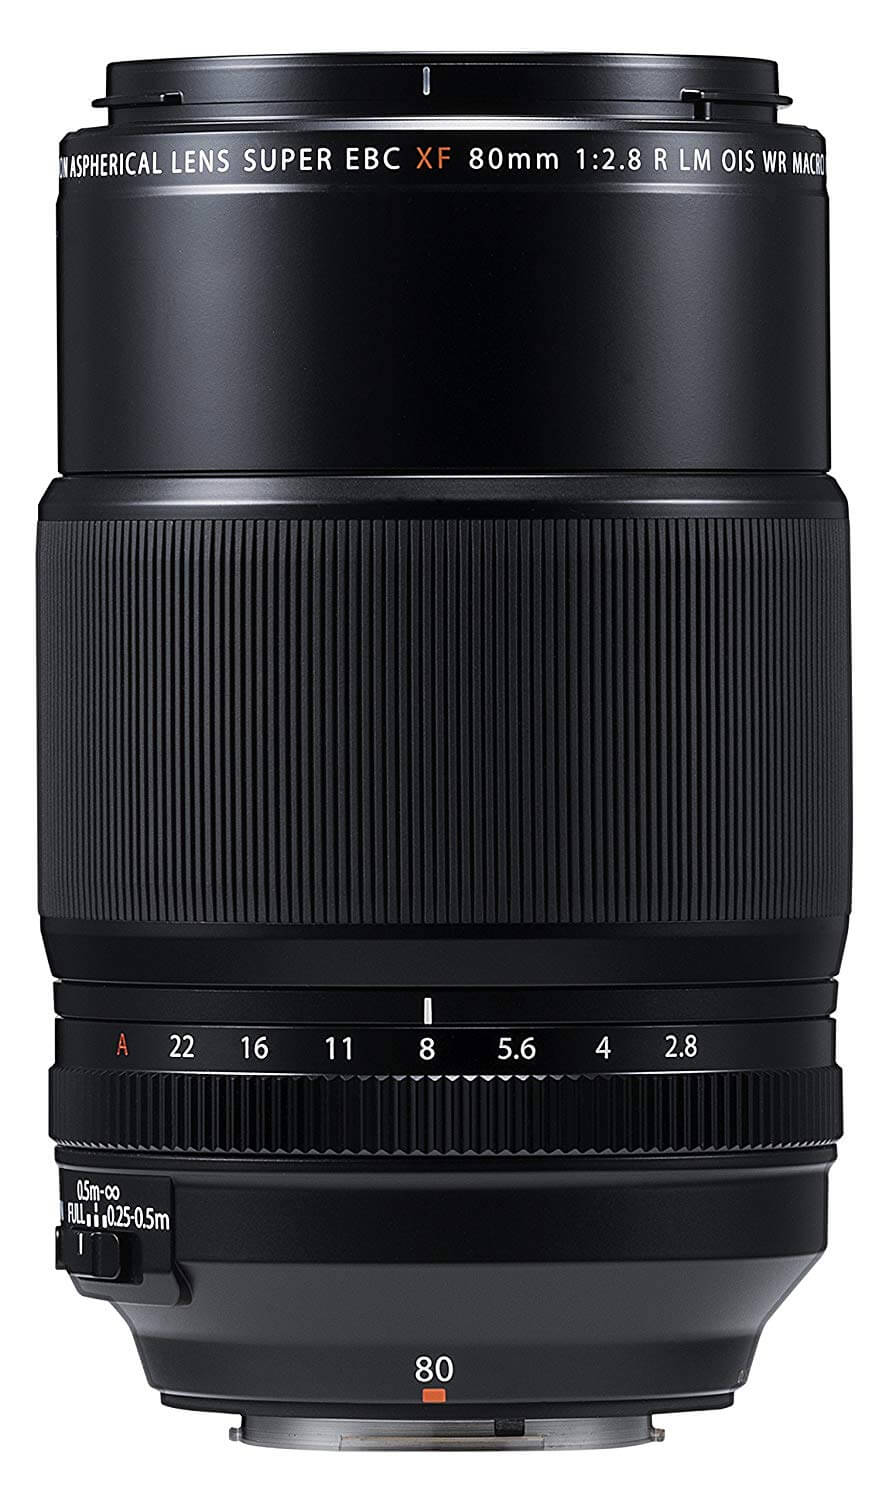 Fuji XF80mm F2.8R Macro - The must have weather sealed lens for Fujifilm X cameras.